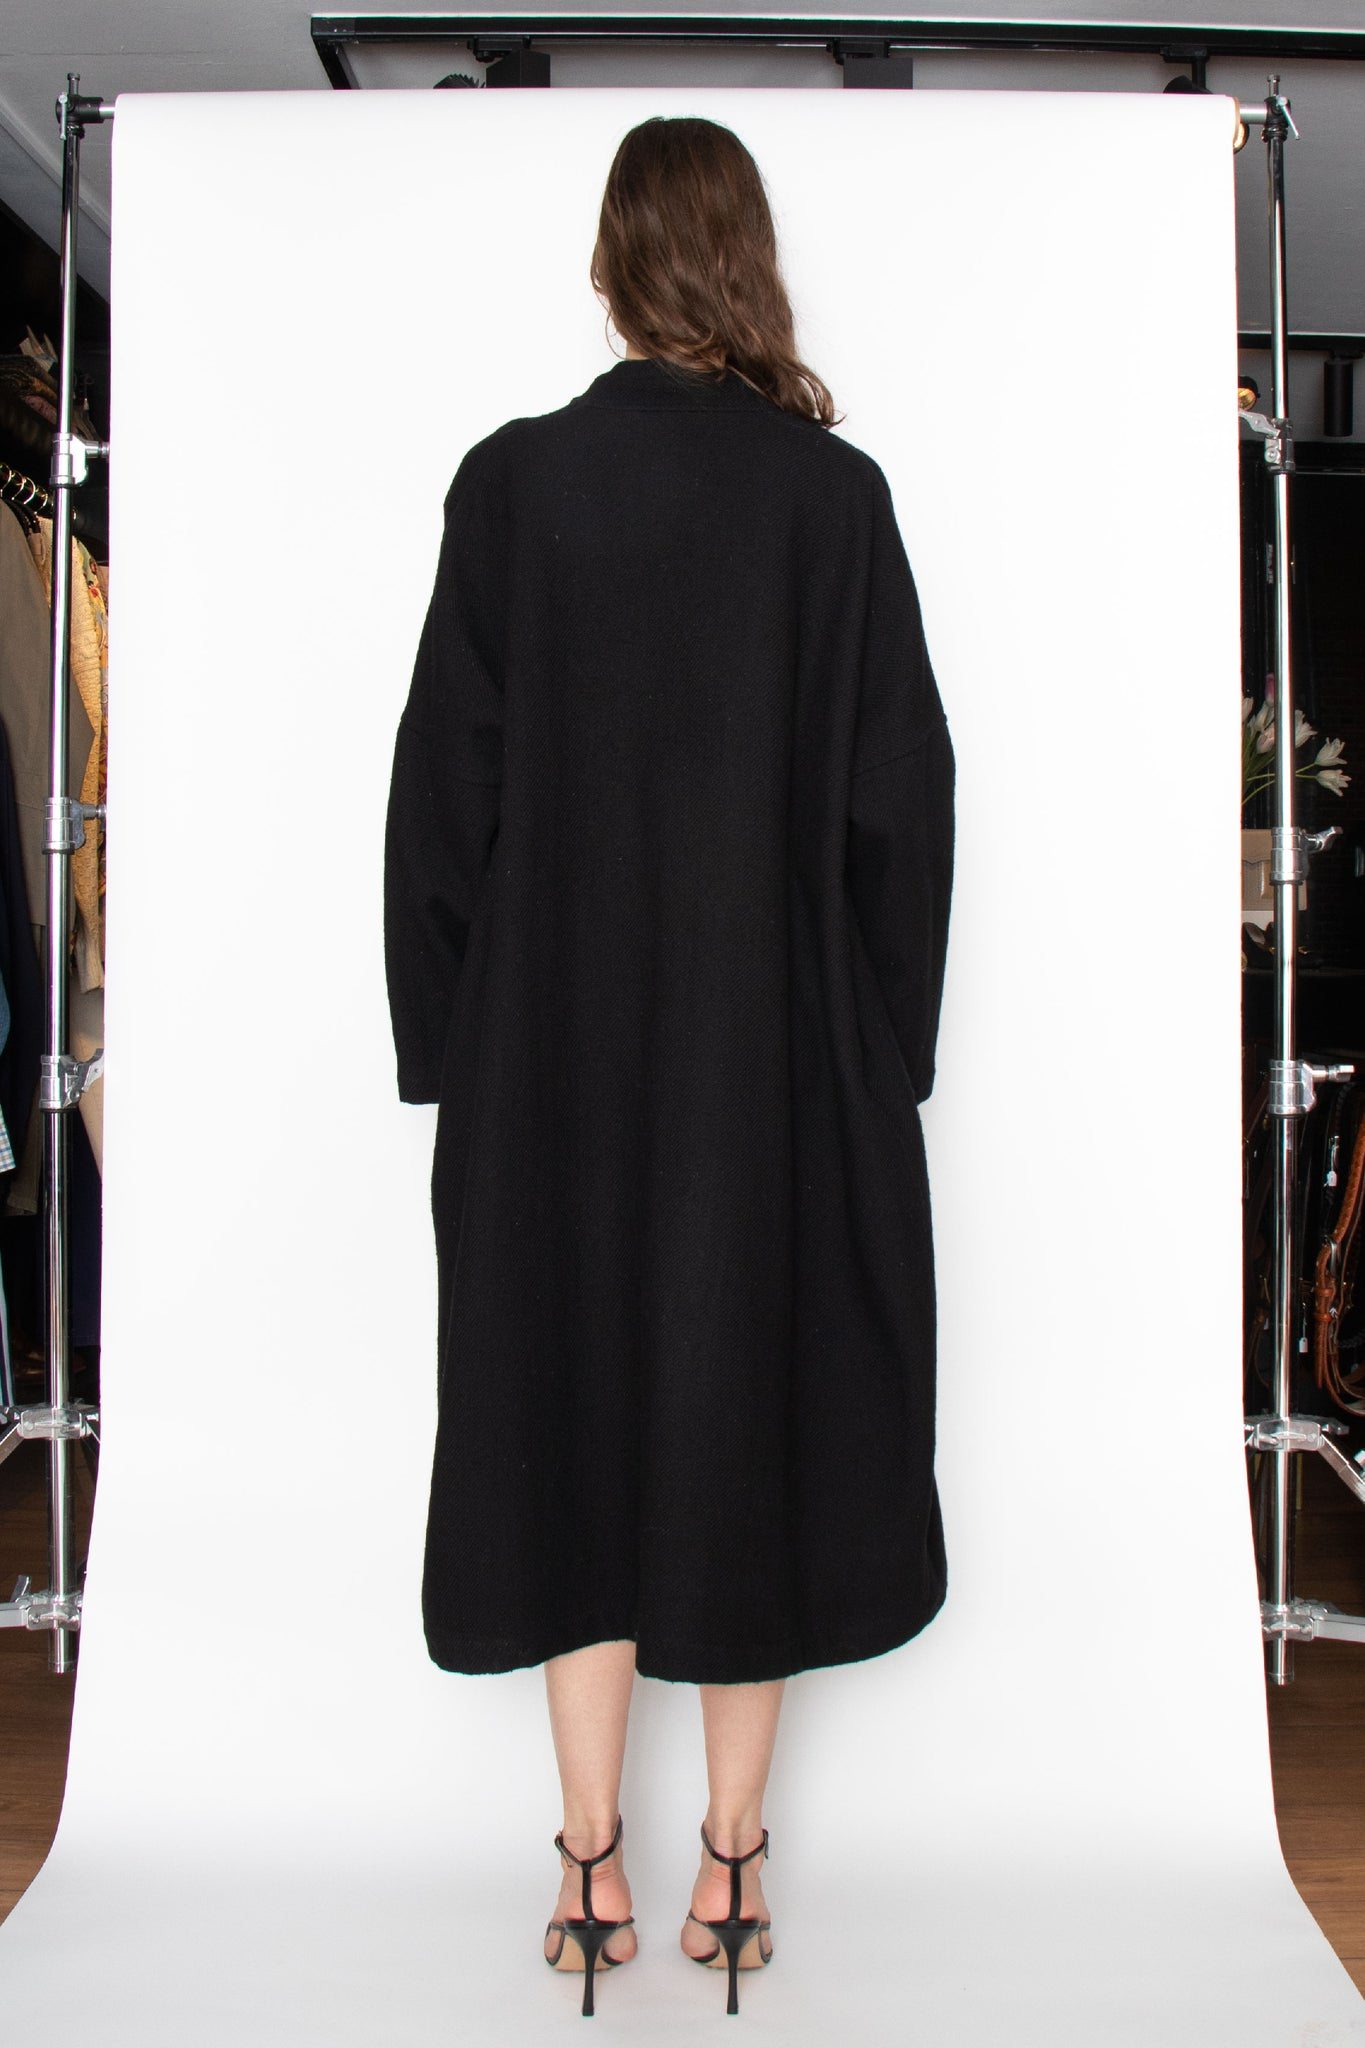 A 1990s Vintage Comme des Garcons Black Wool Dress OS